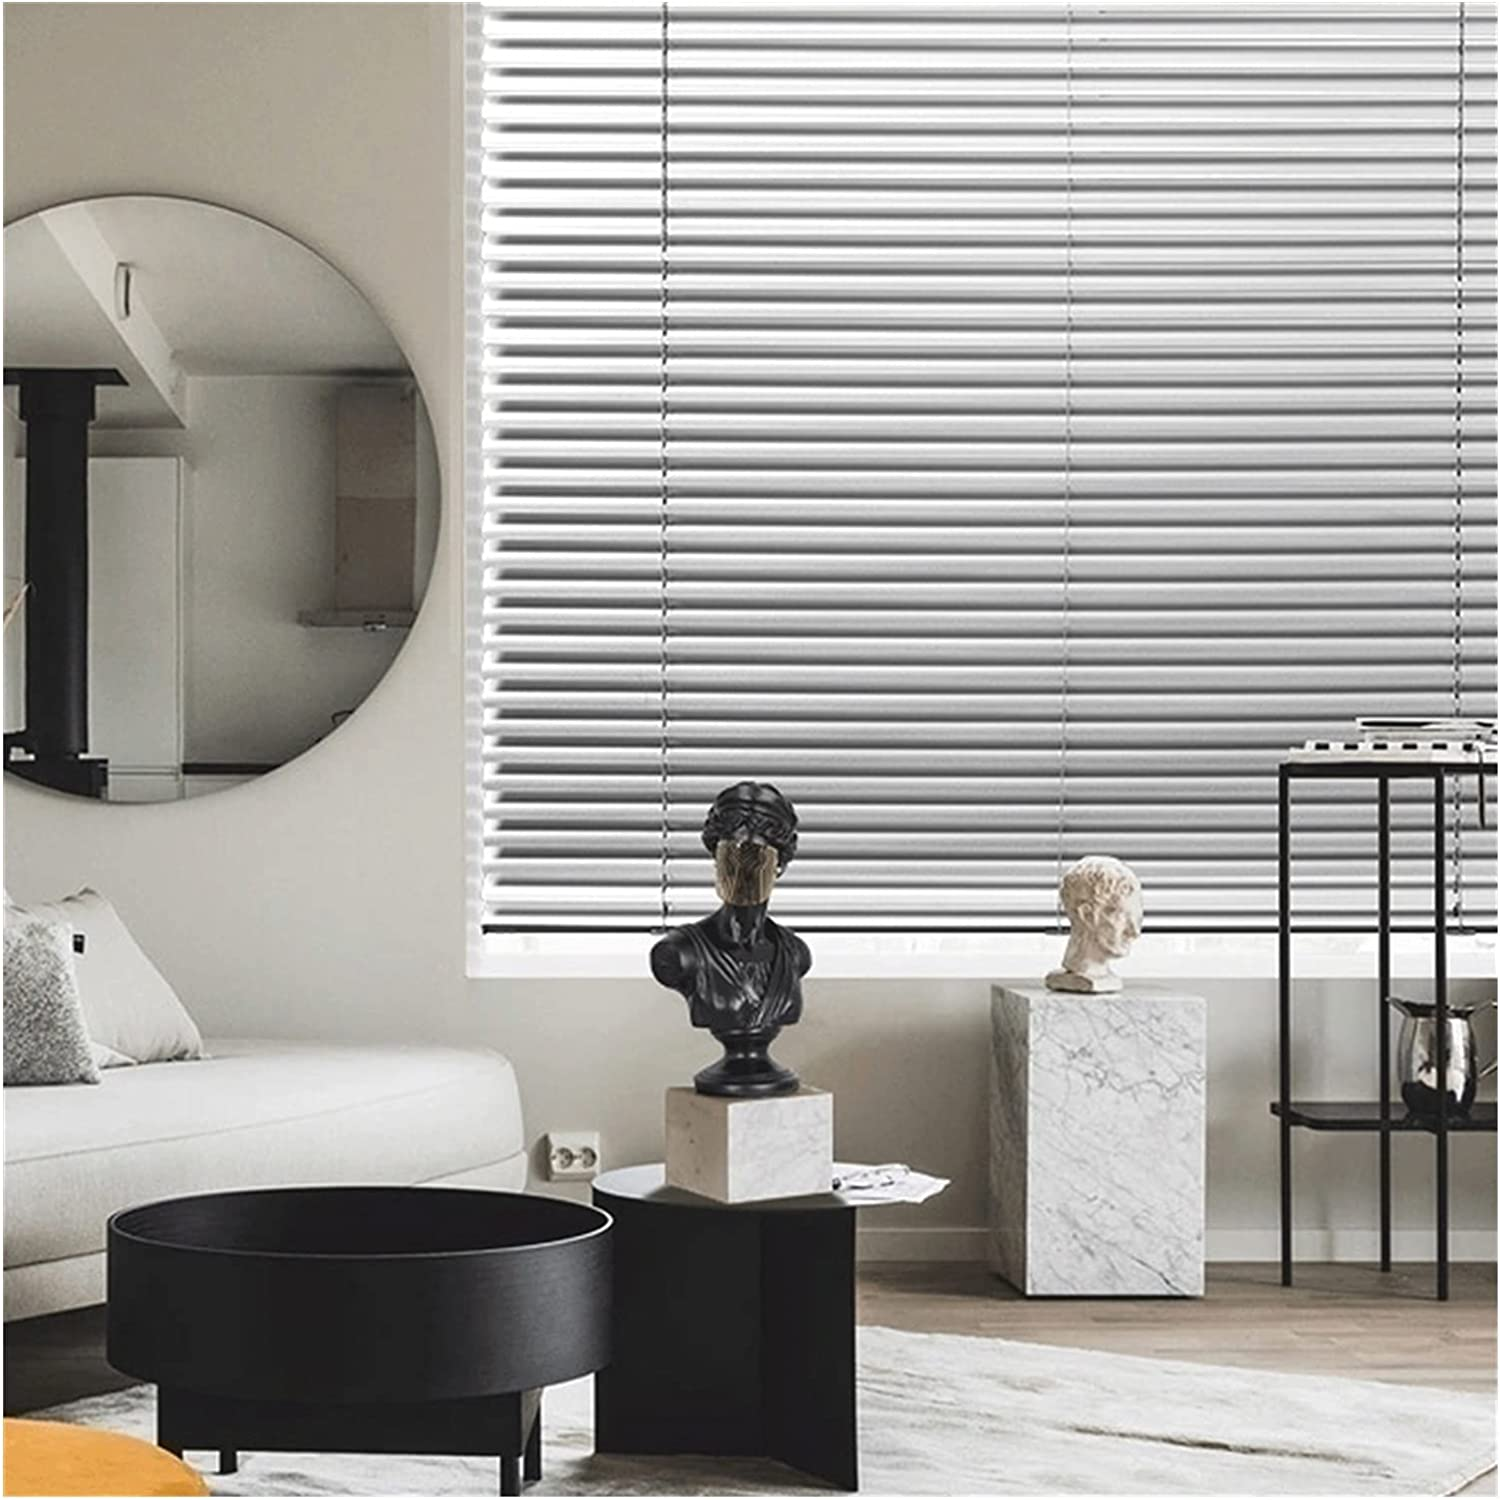 Gwendolyn Small Window Shade Max 80% OFF Brushed 40% OFF Cheap Sale Rol Blinds Blackout Texture